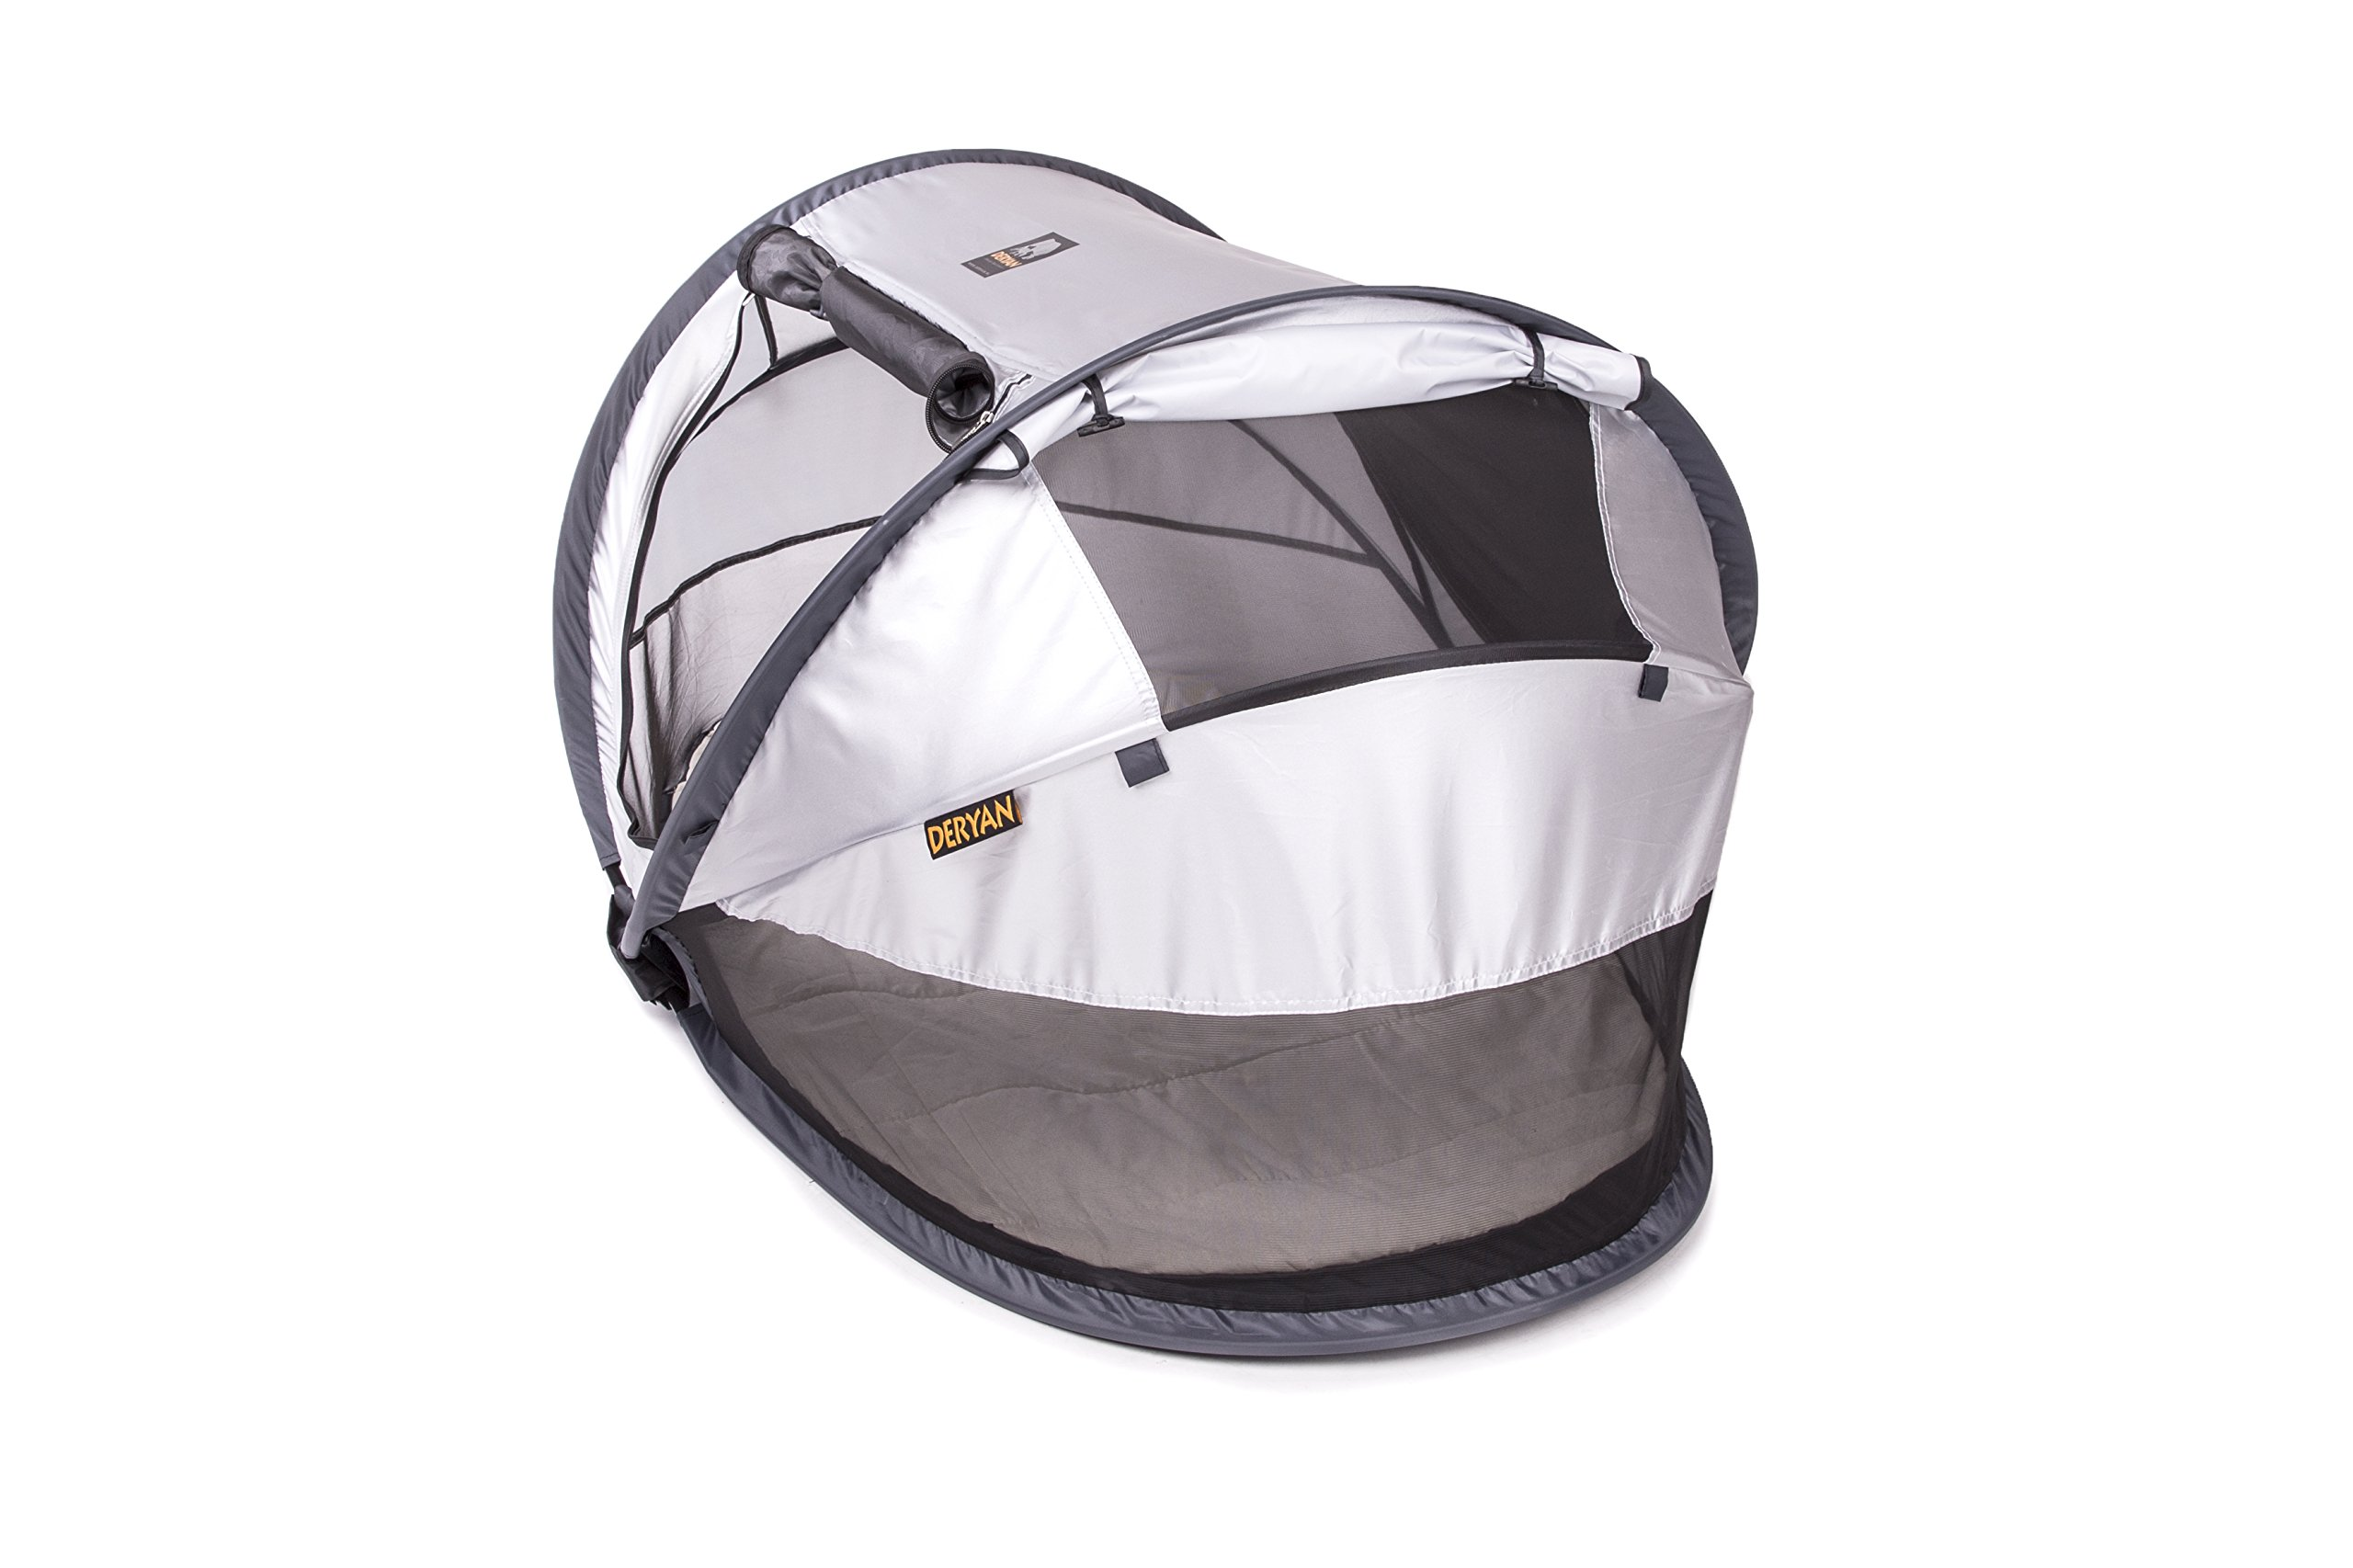 Travel Cot Peuter Luxe (Silver) Deryan 50% UV Protection and flame retardant fabric Setup in 2 seconds and a anti-musquito net  4